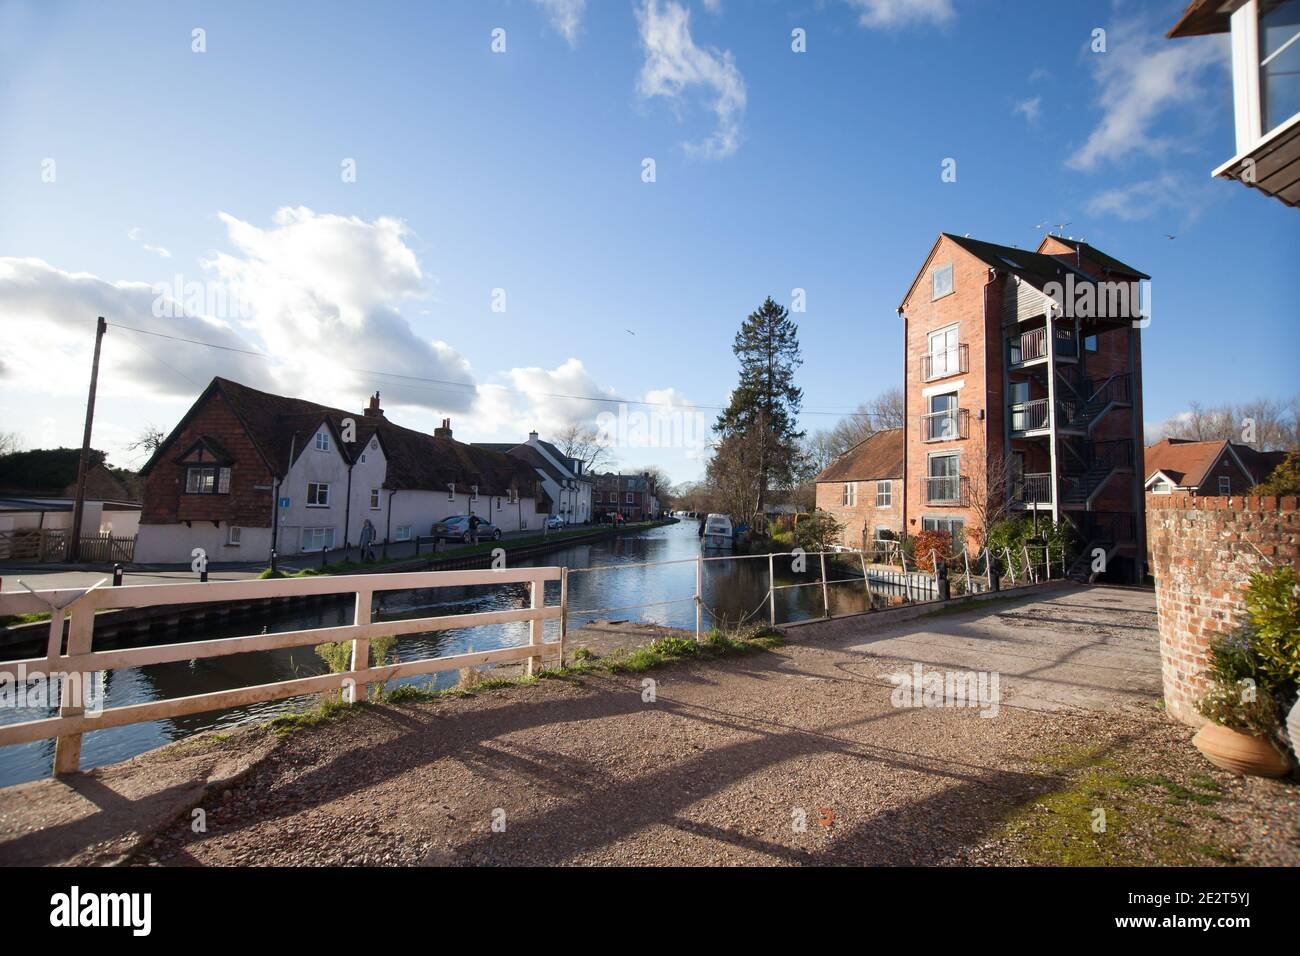 Views of the canal by the lock in Newbury, Berkshire in the UK, taken on the 19th November 2020 Stock Photo